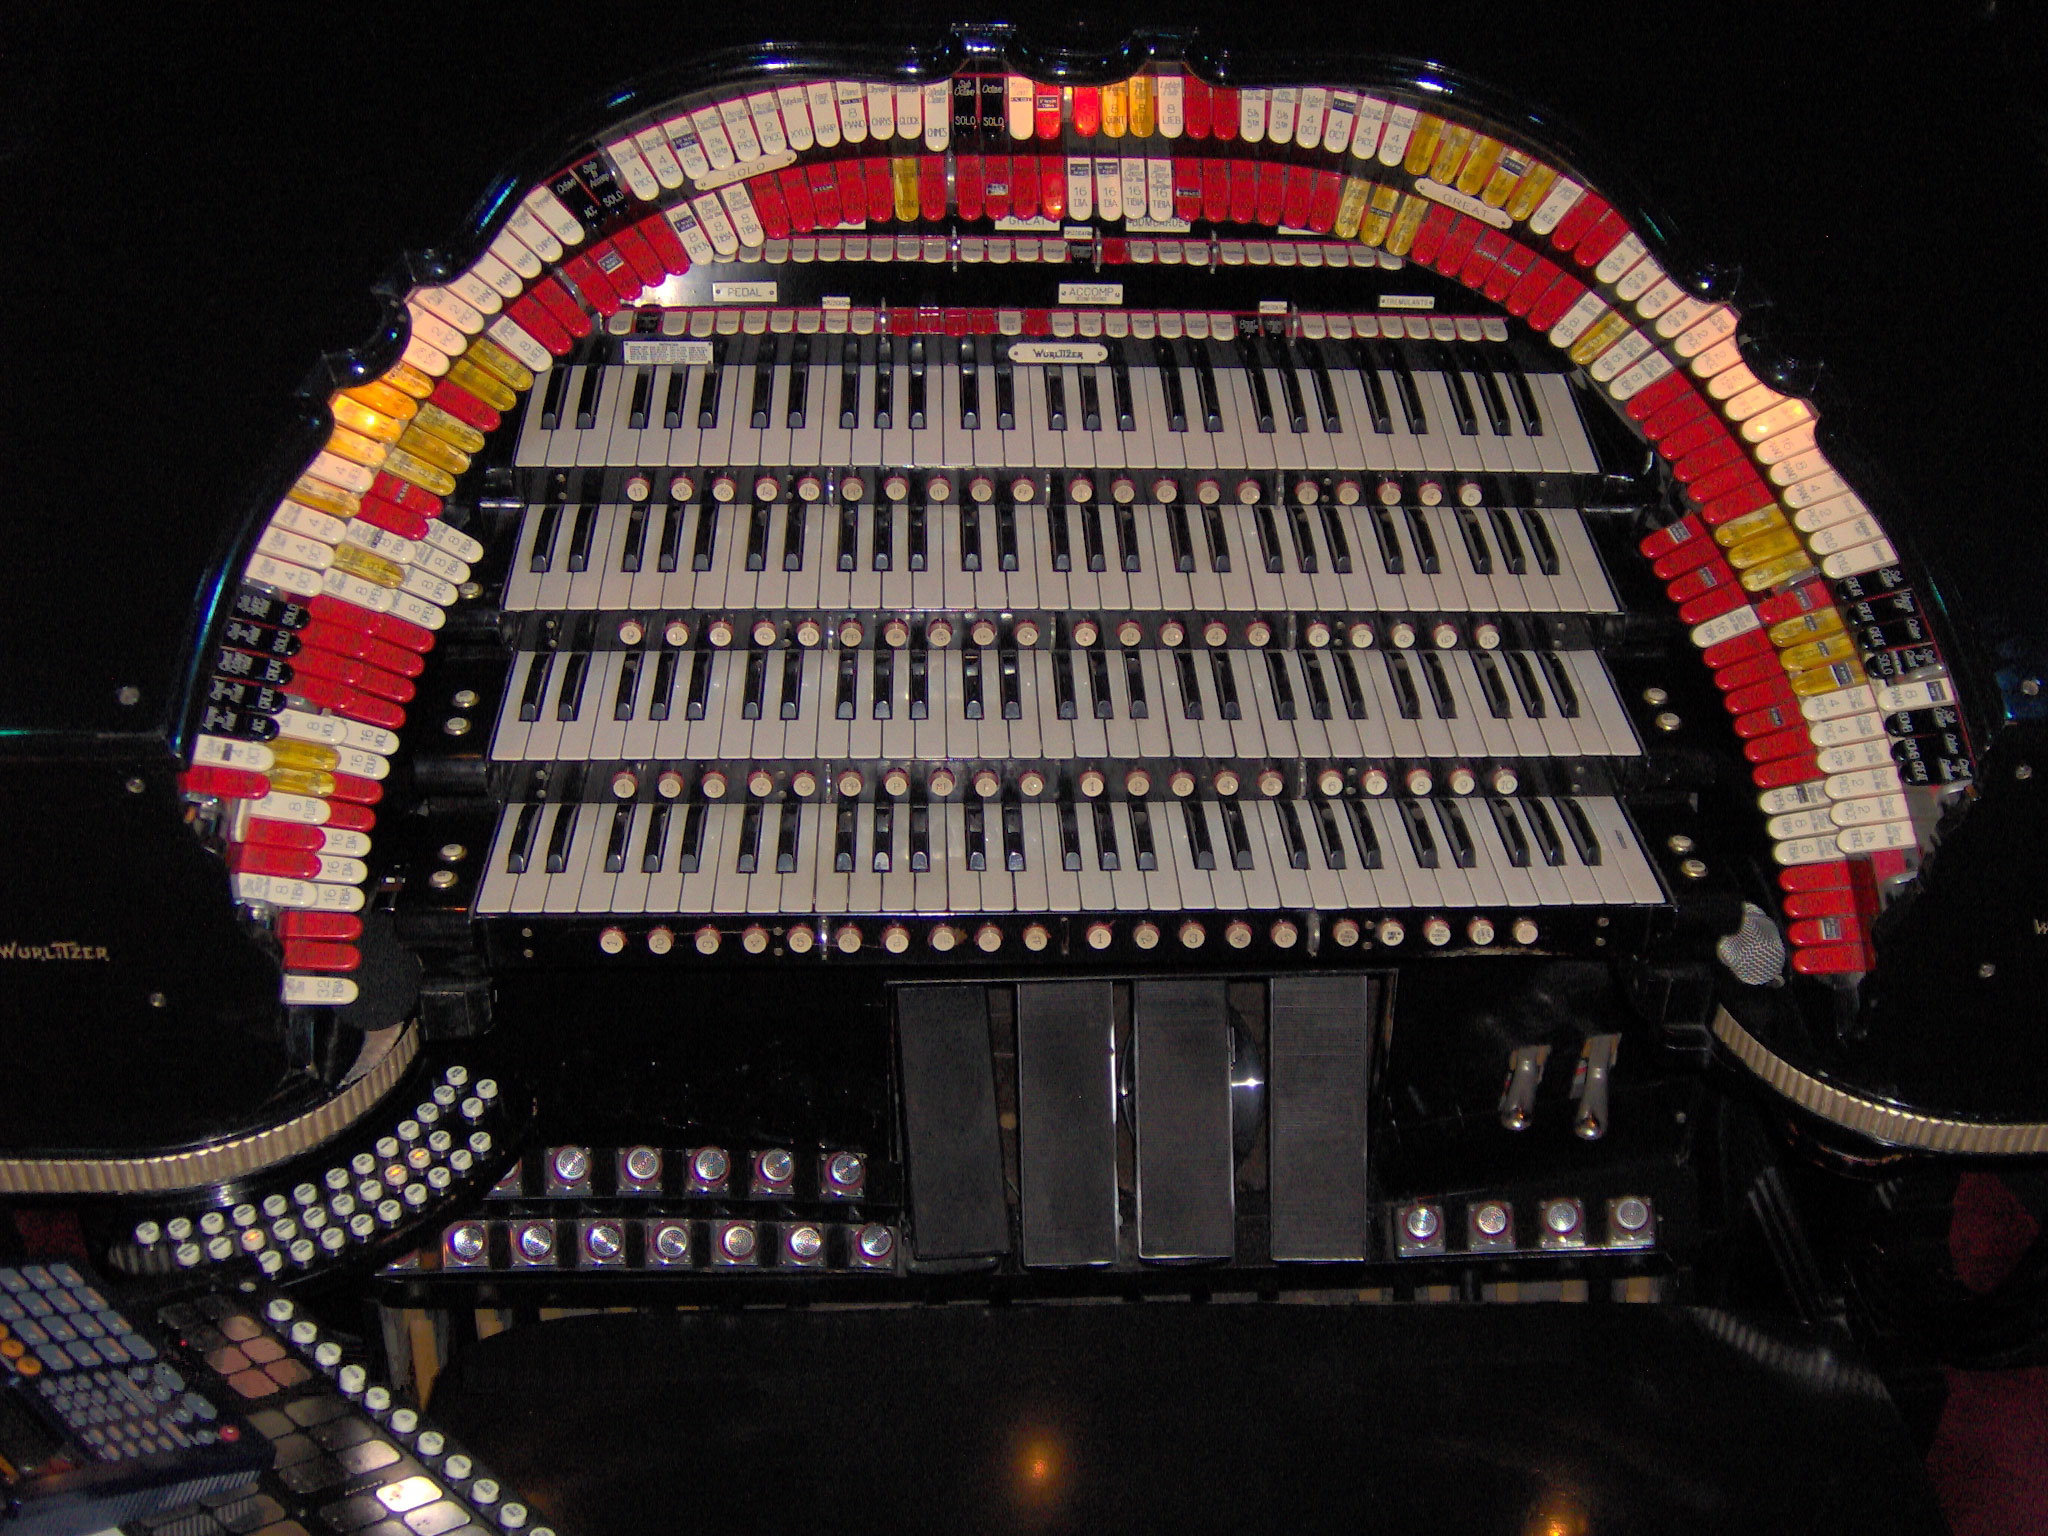 Featured Organ For August 2005